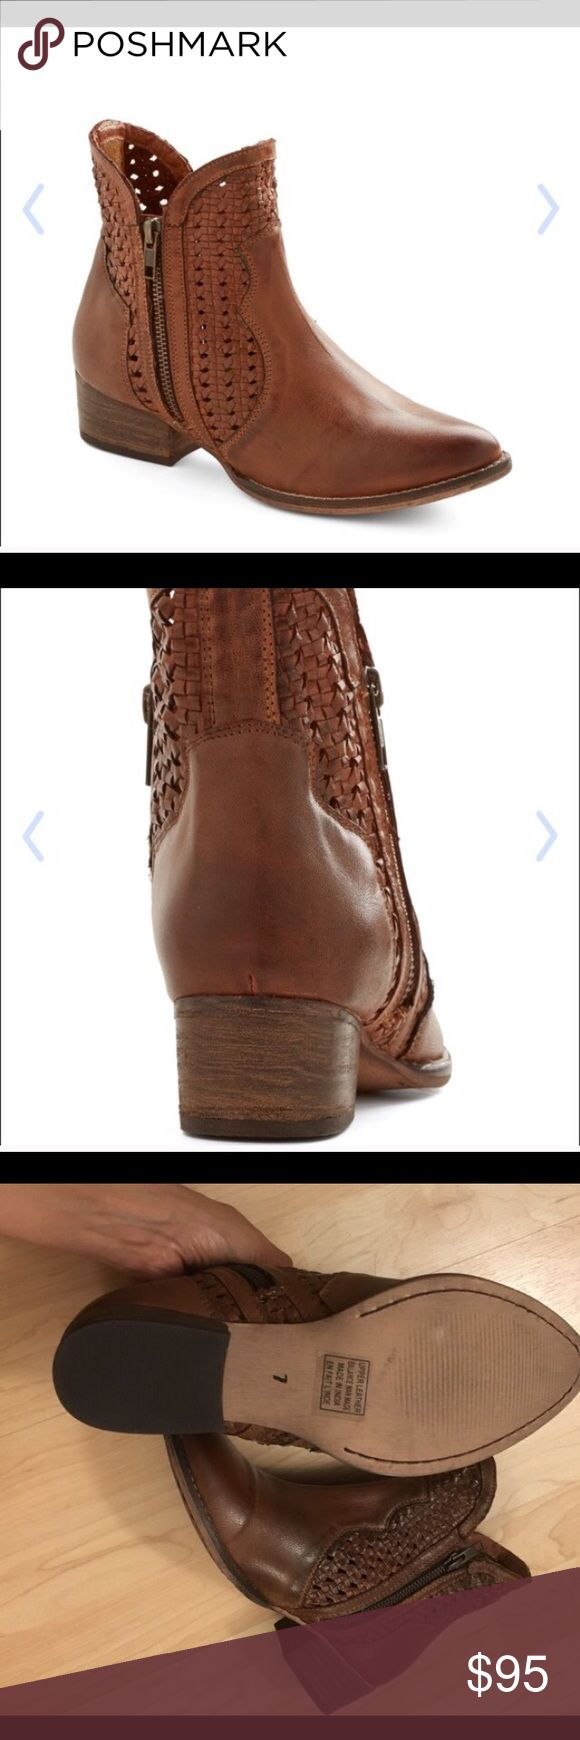 """Seychelles Flip A Coin Leather Bootie Details Sizing: True to size.  - Almond toe - Contrast woven construction - Side zip closures - Approx. 7"""" shaft height, 10"""" opening circumference - Approx. 1.5"""" heel, 0.25"""" platform - Box not included Seychelles Shoes Ankle Boots & Booties"""